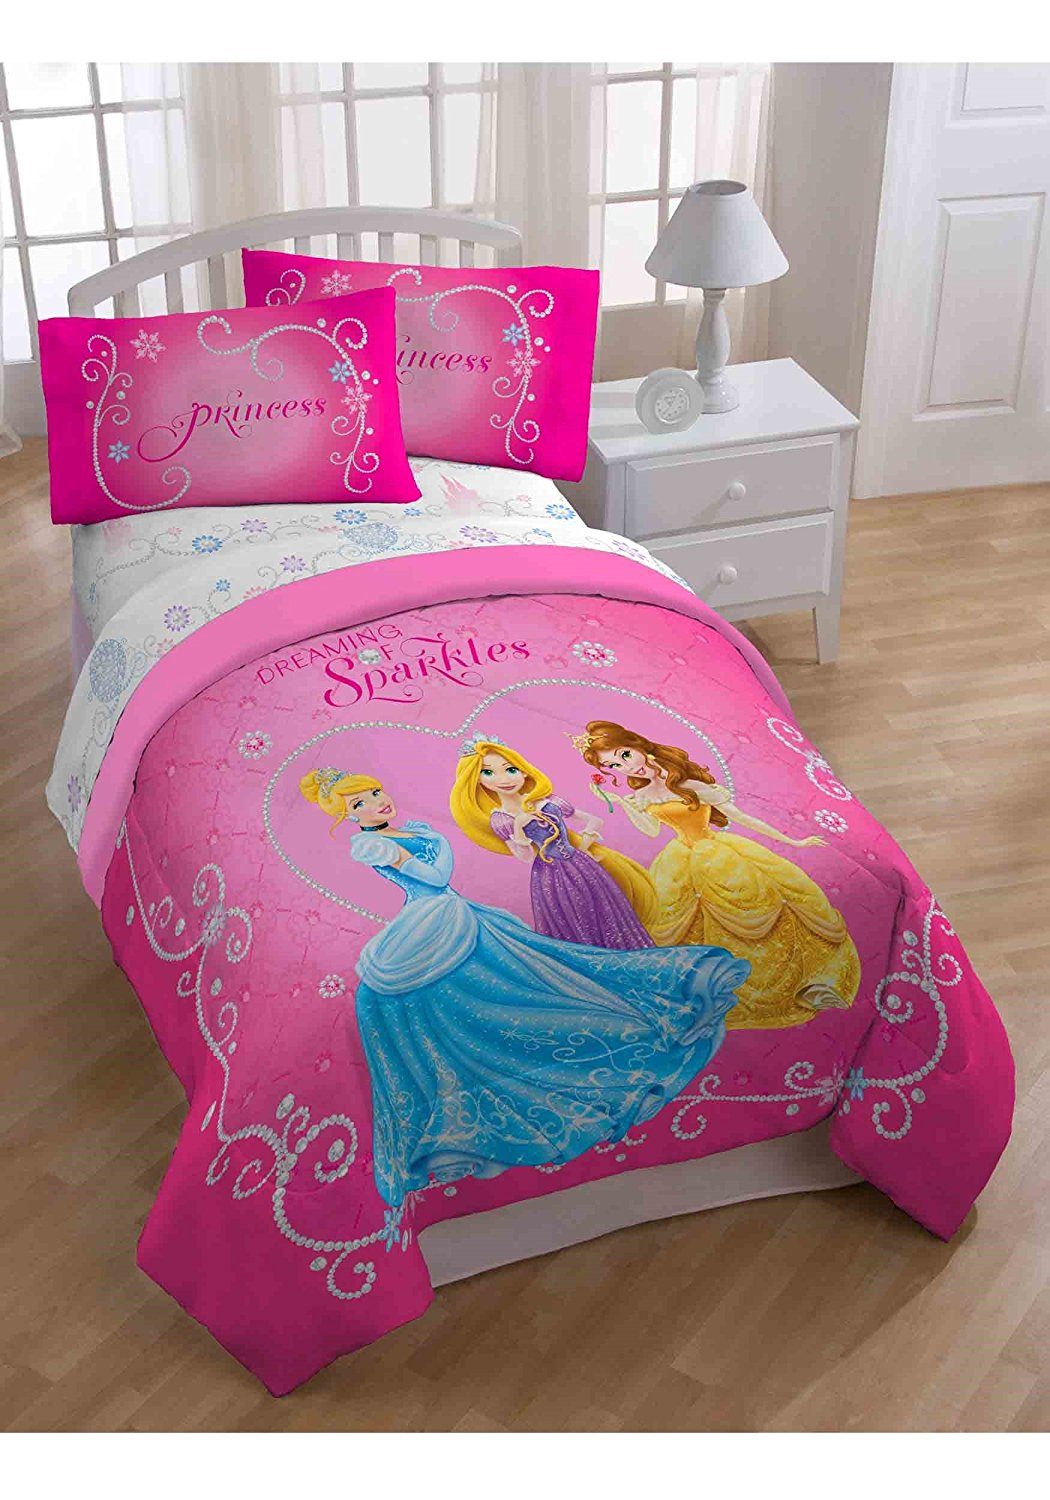 Tangled Bedding Comforter Set For Kid Happiness Homeindec